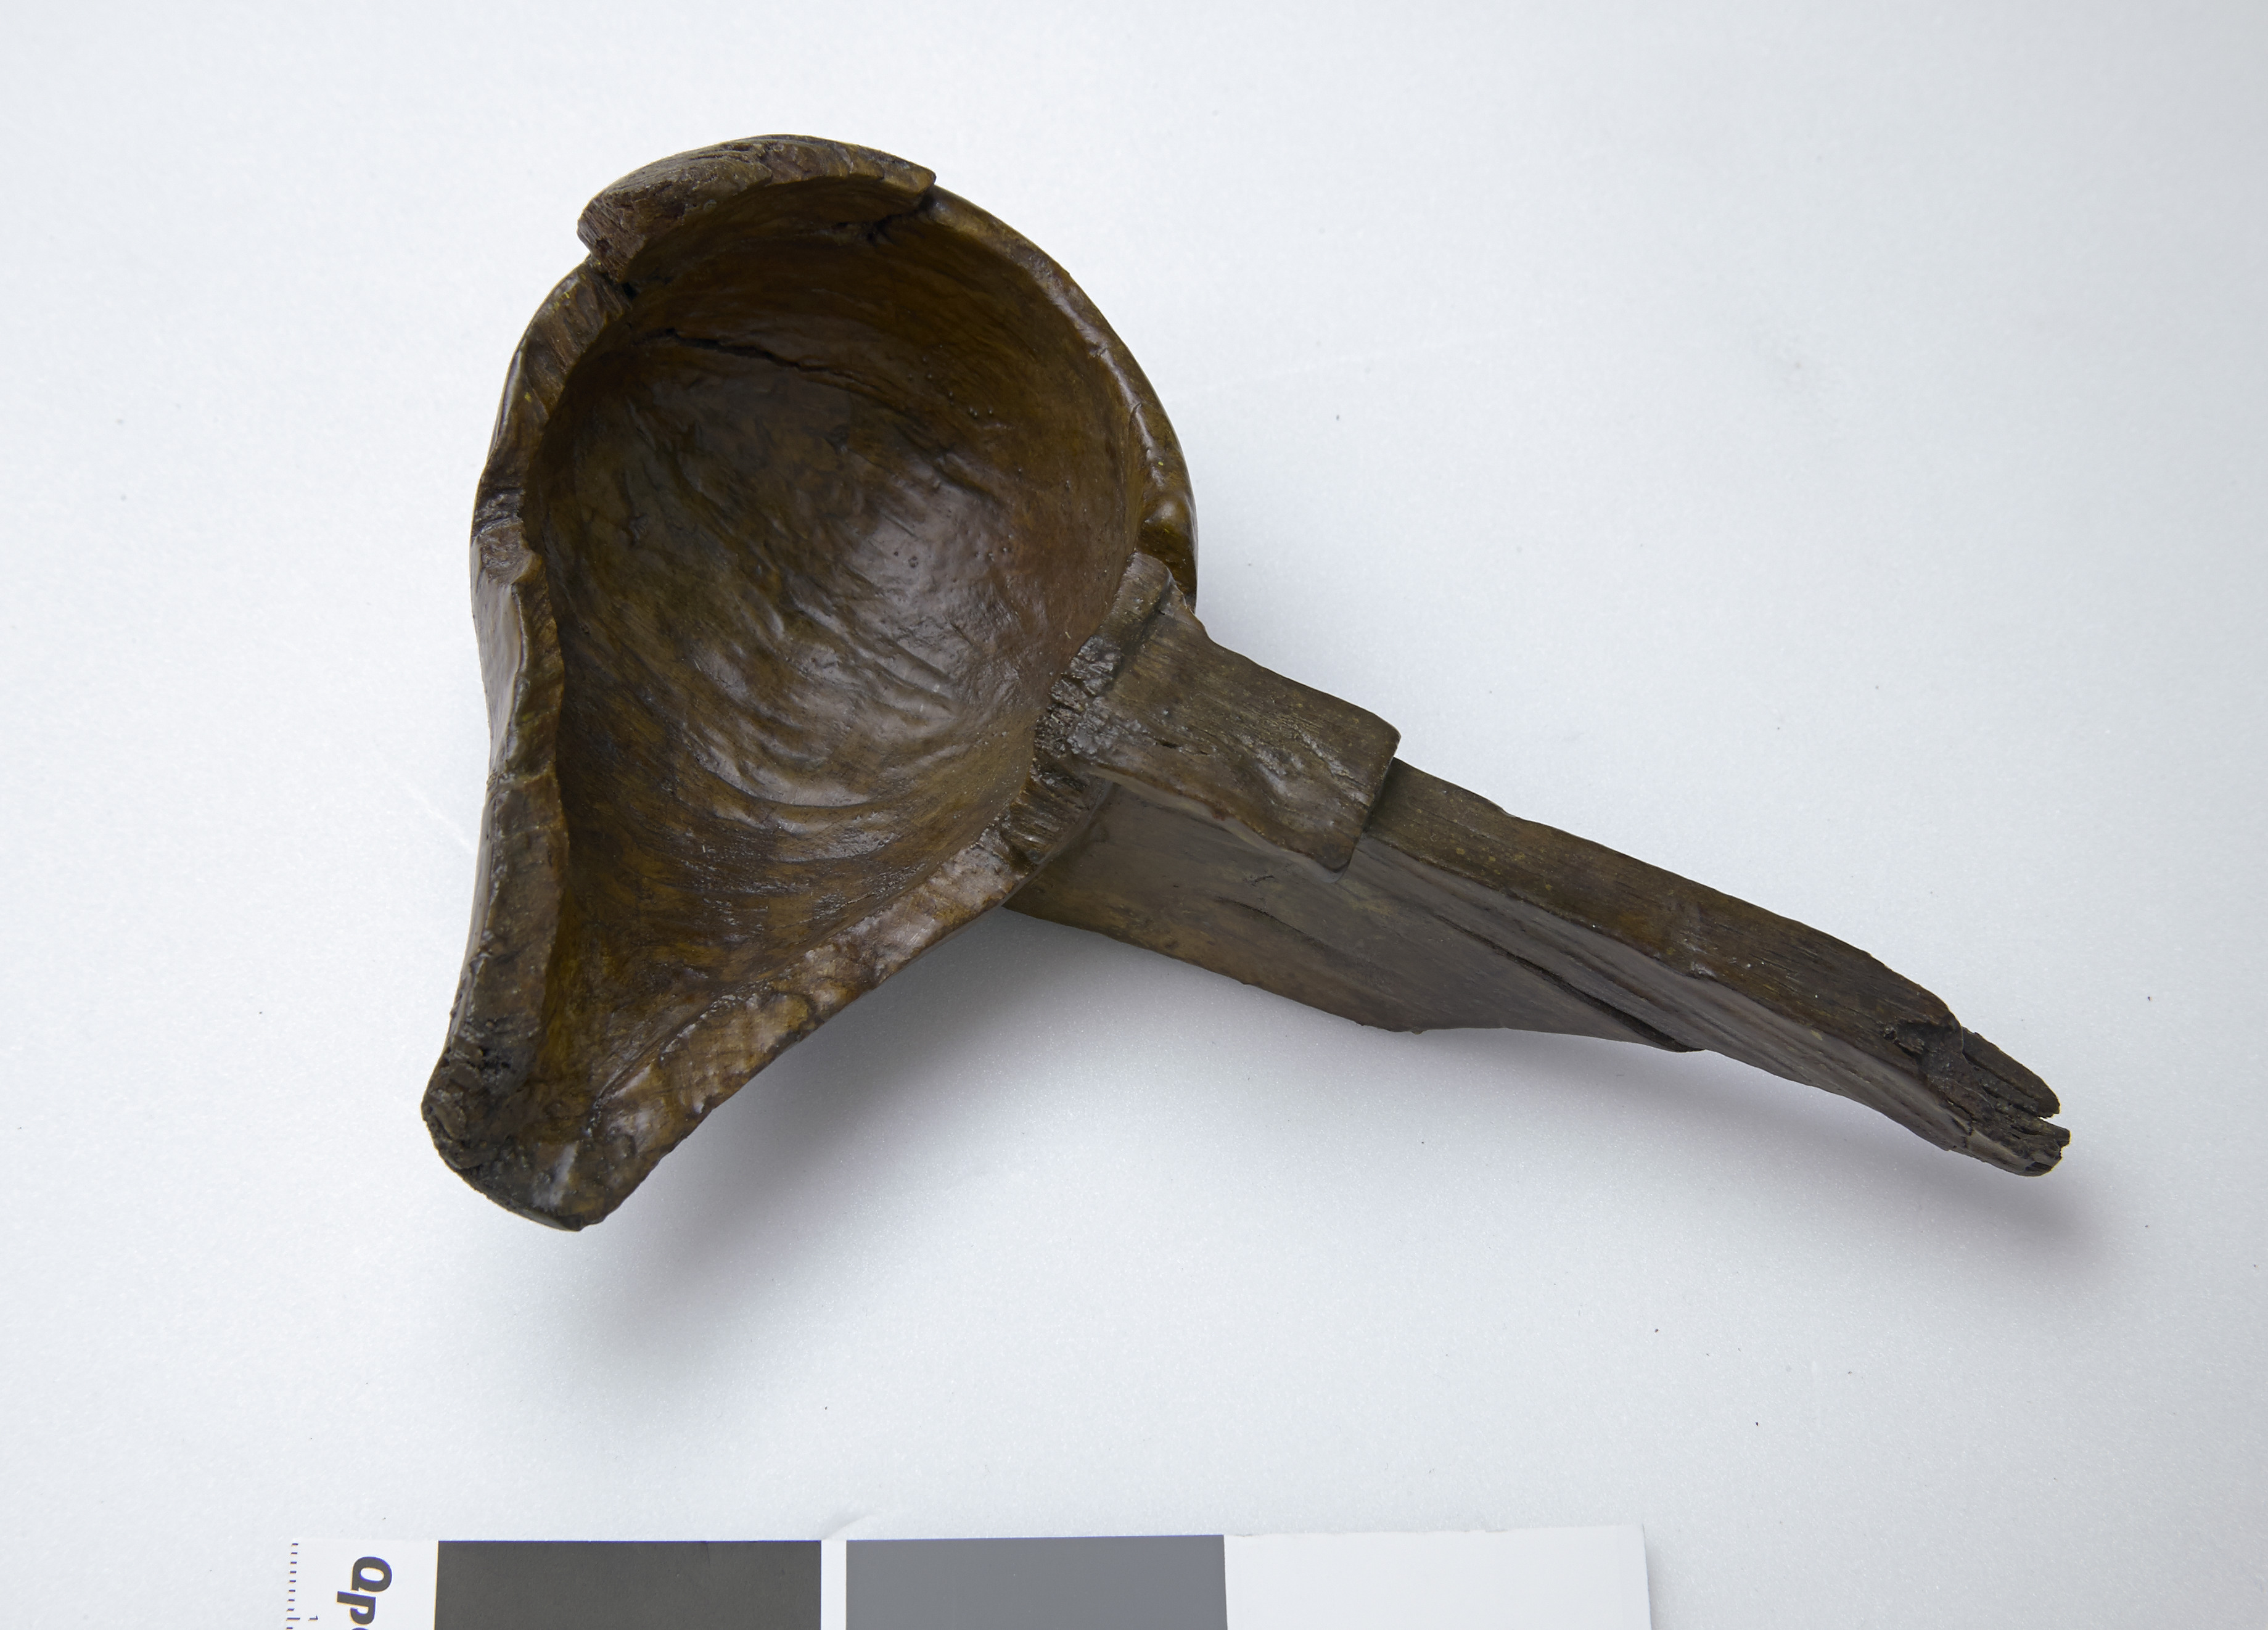 Image of artefact